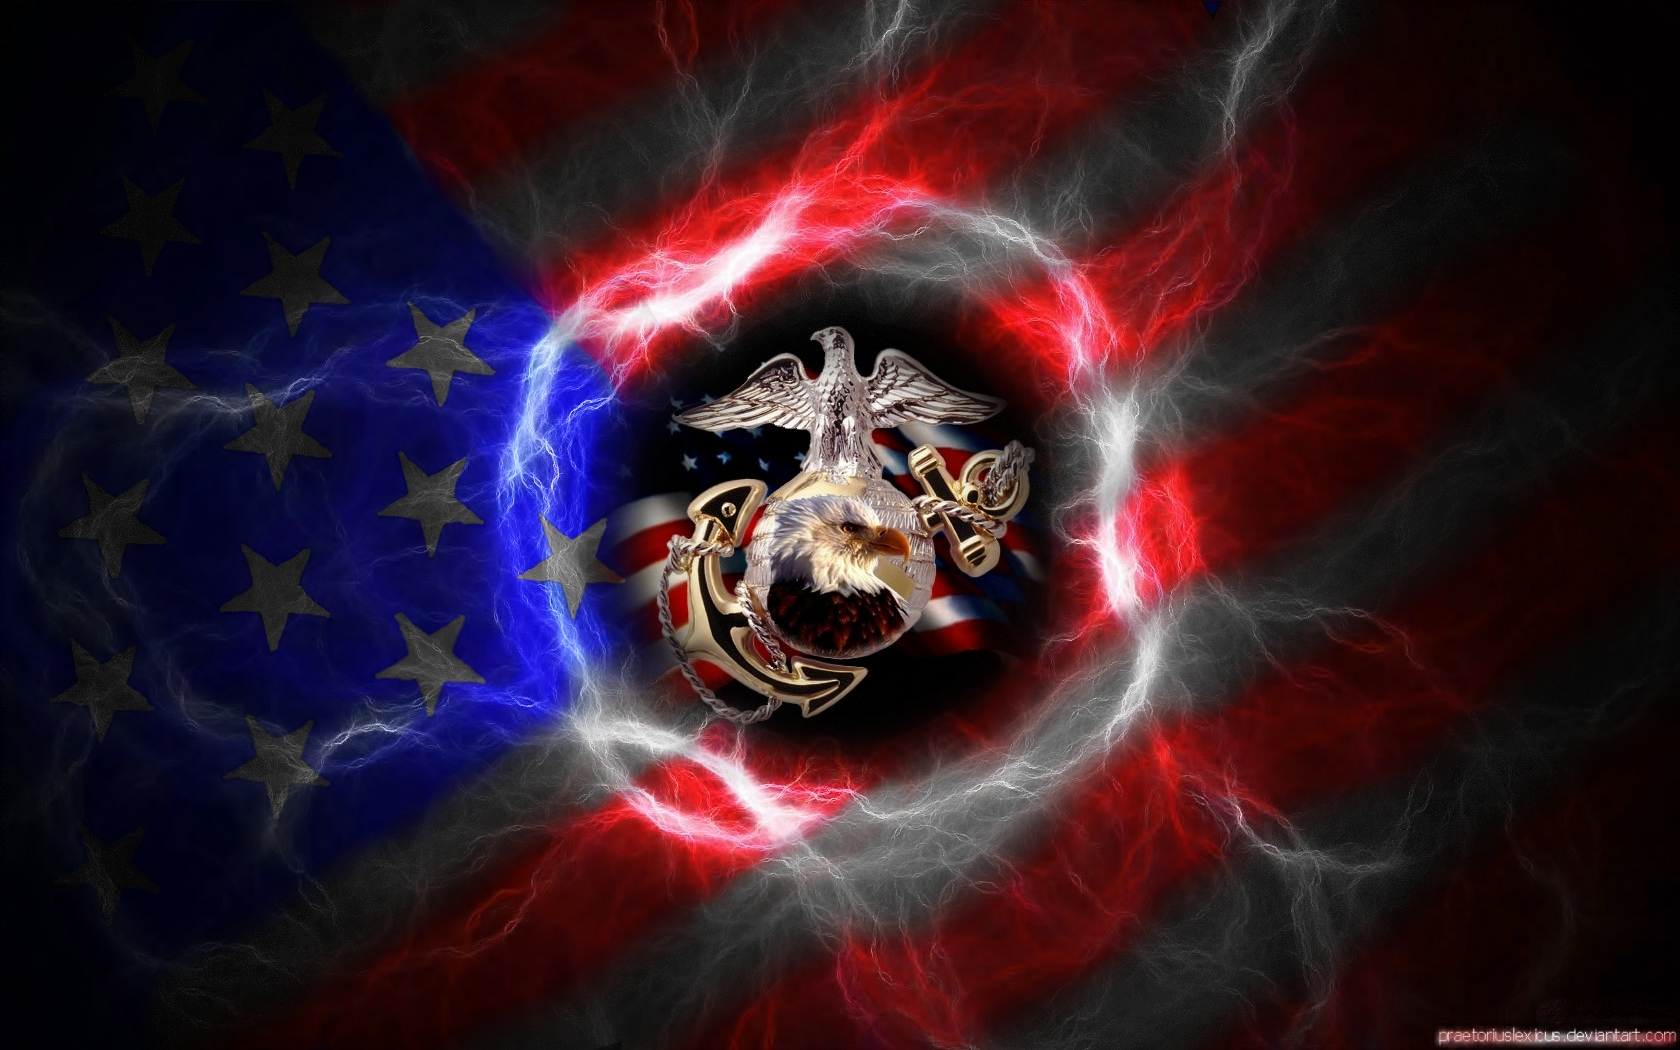 USMC Wallpaper Images wallpaper USMC Wallpaper Images hd wallpaper 1680x1050